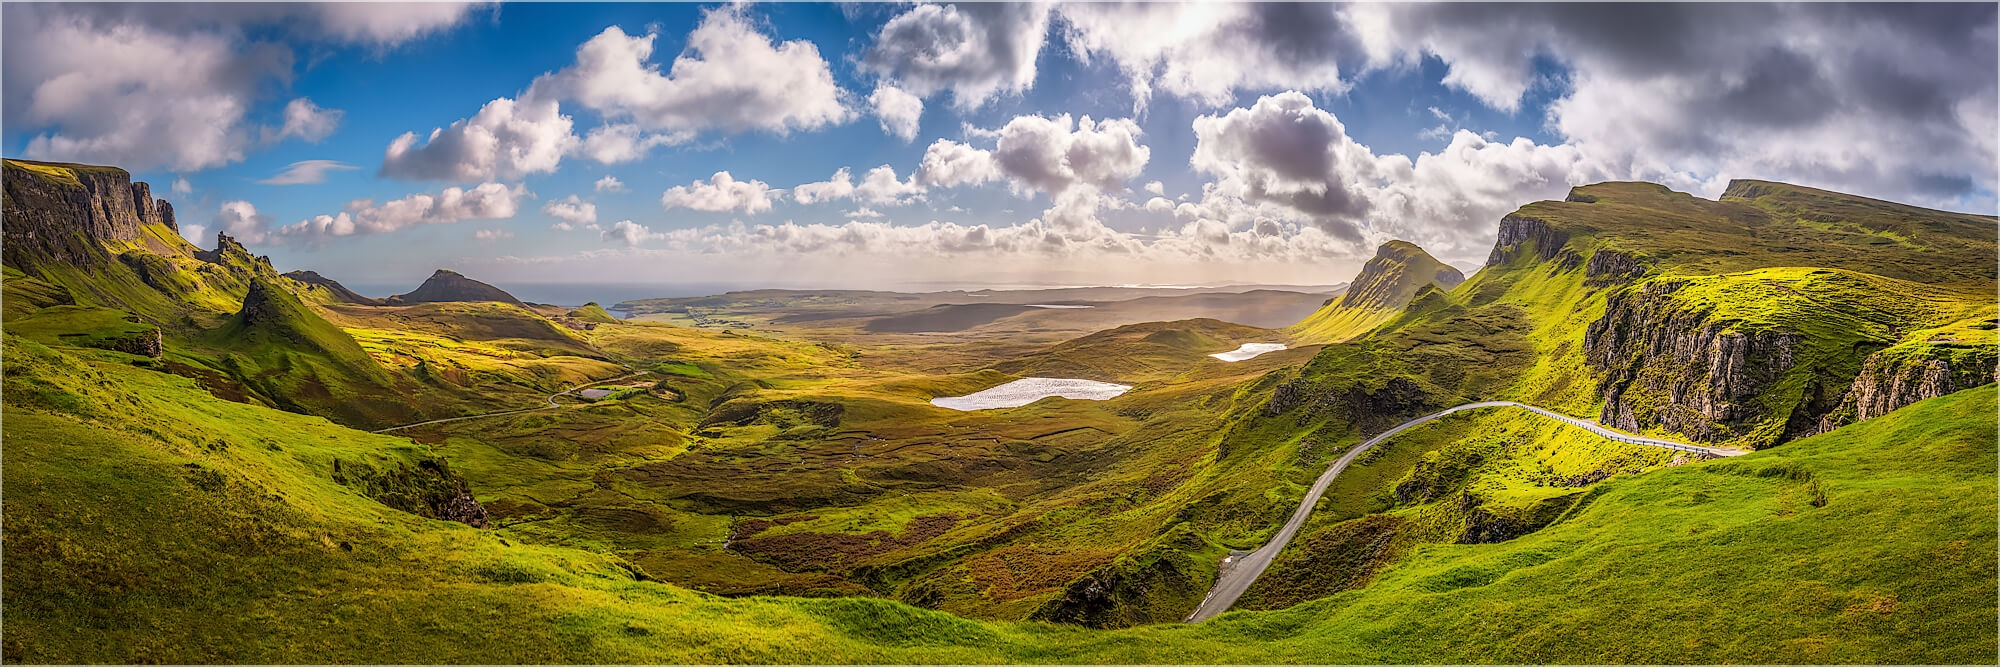 Panoramabild Quiraing Mountains Isle of Skye Schottland